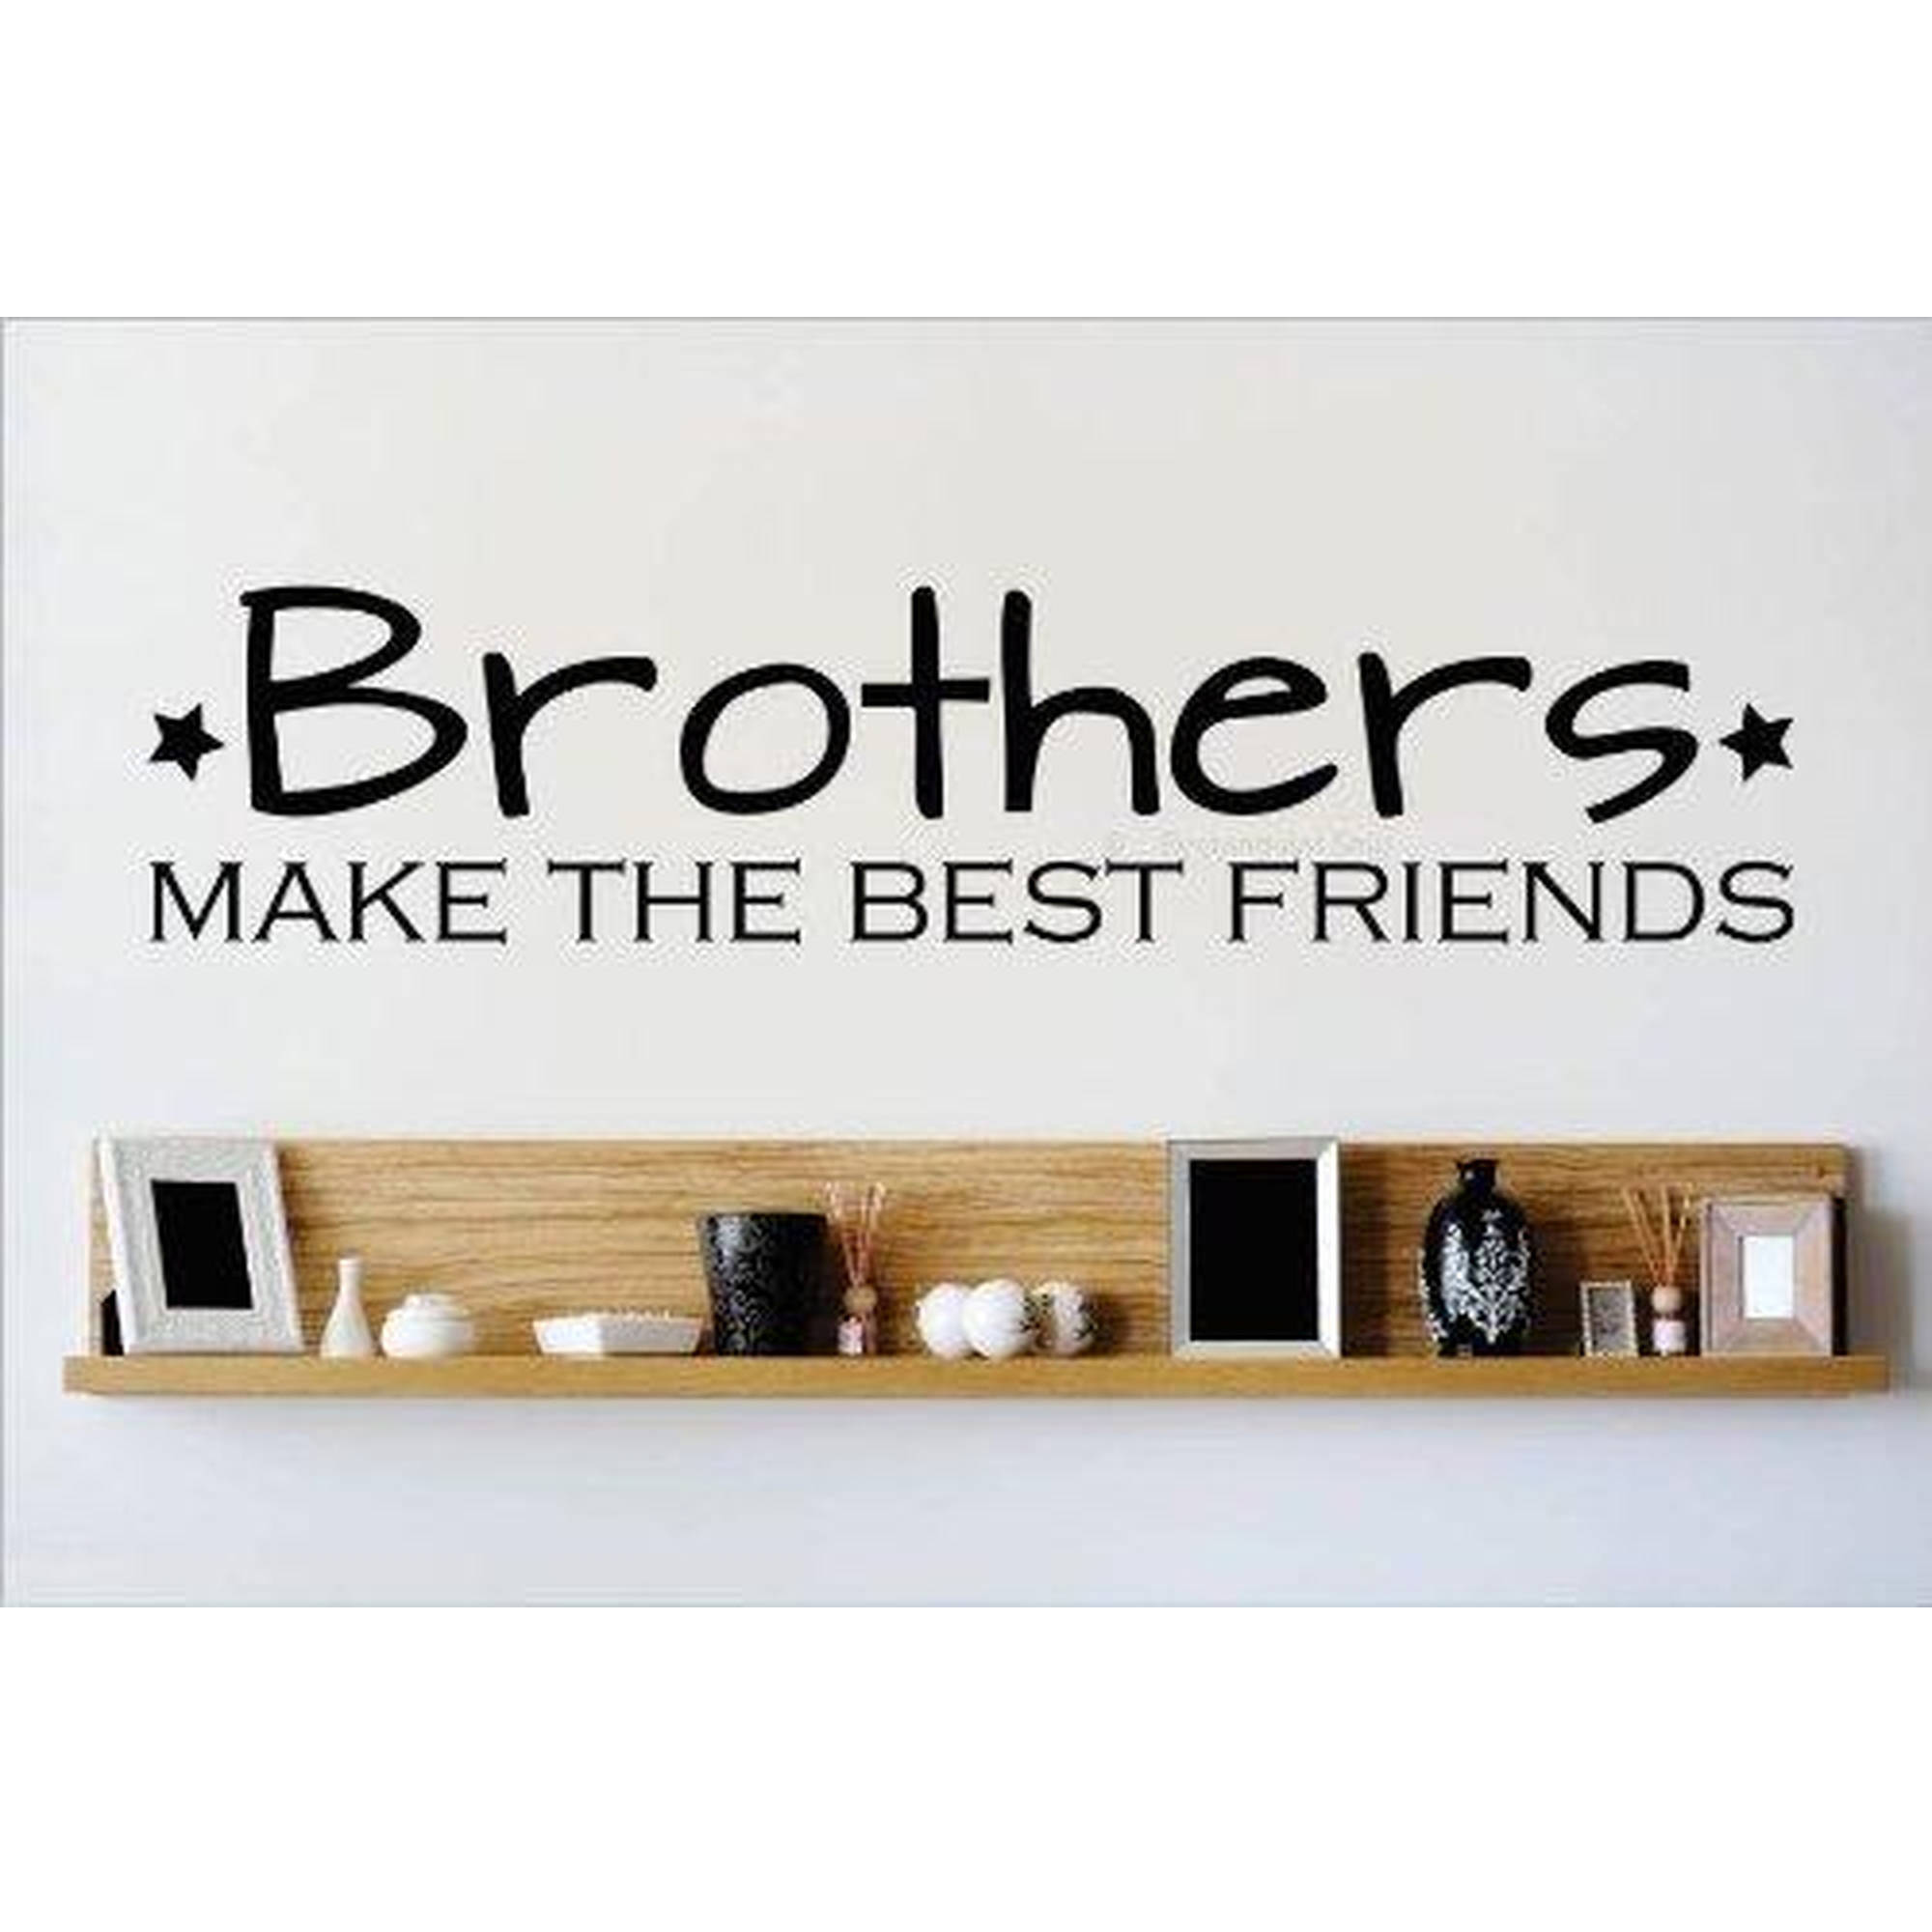 "Brothers Make The Best Friends Boys Bedroom Vinyl Wall Decal, 7"" x 30"", Black"